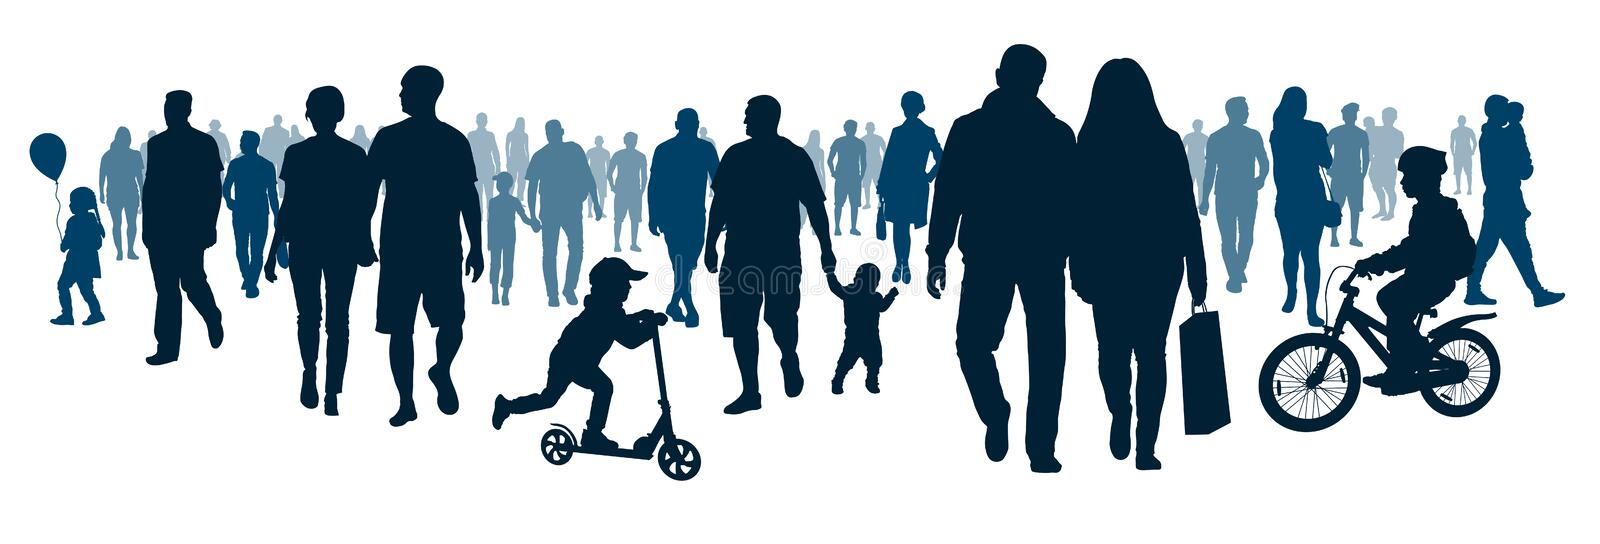 Crowd of people walking people are going. Mob go, meeting event. stock illustration